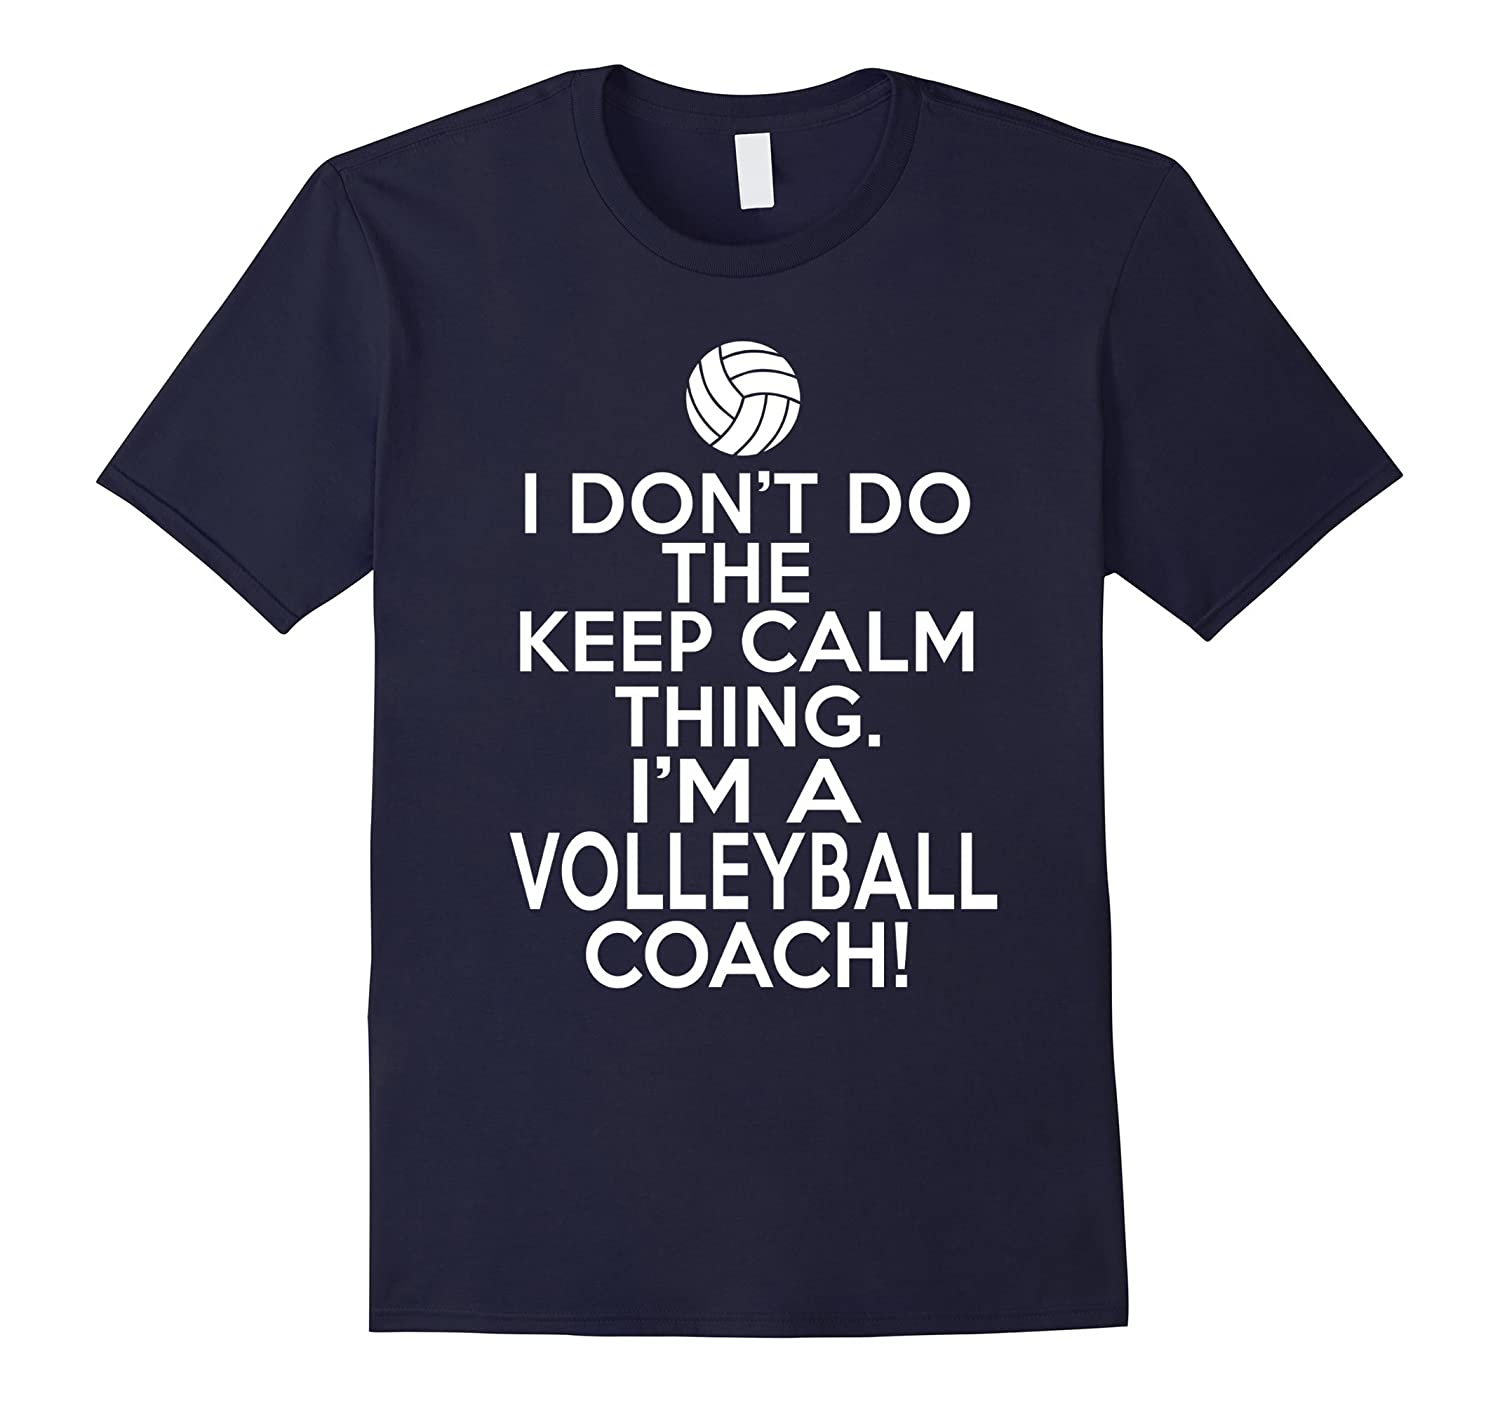 I Dont Do The Keep Calm Thing - Volleyball Coach-Vaci